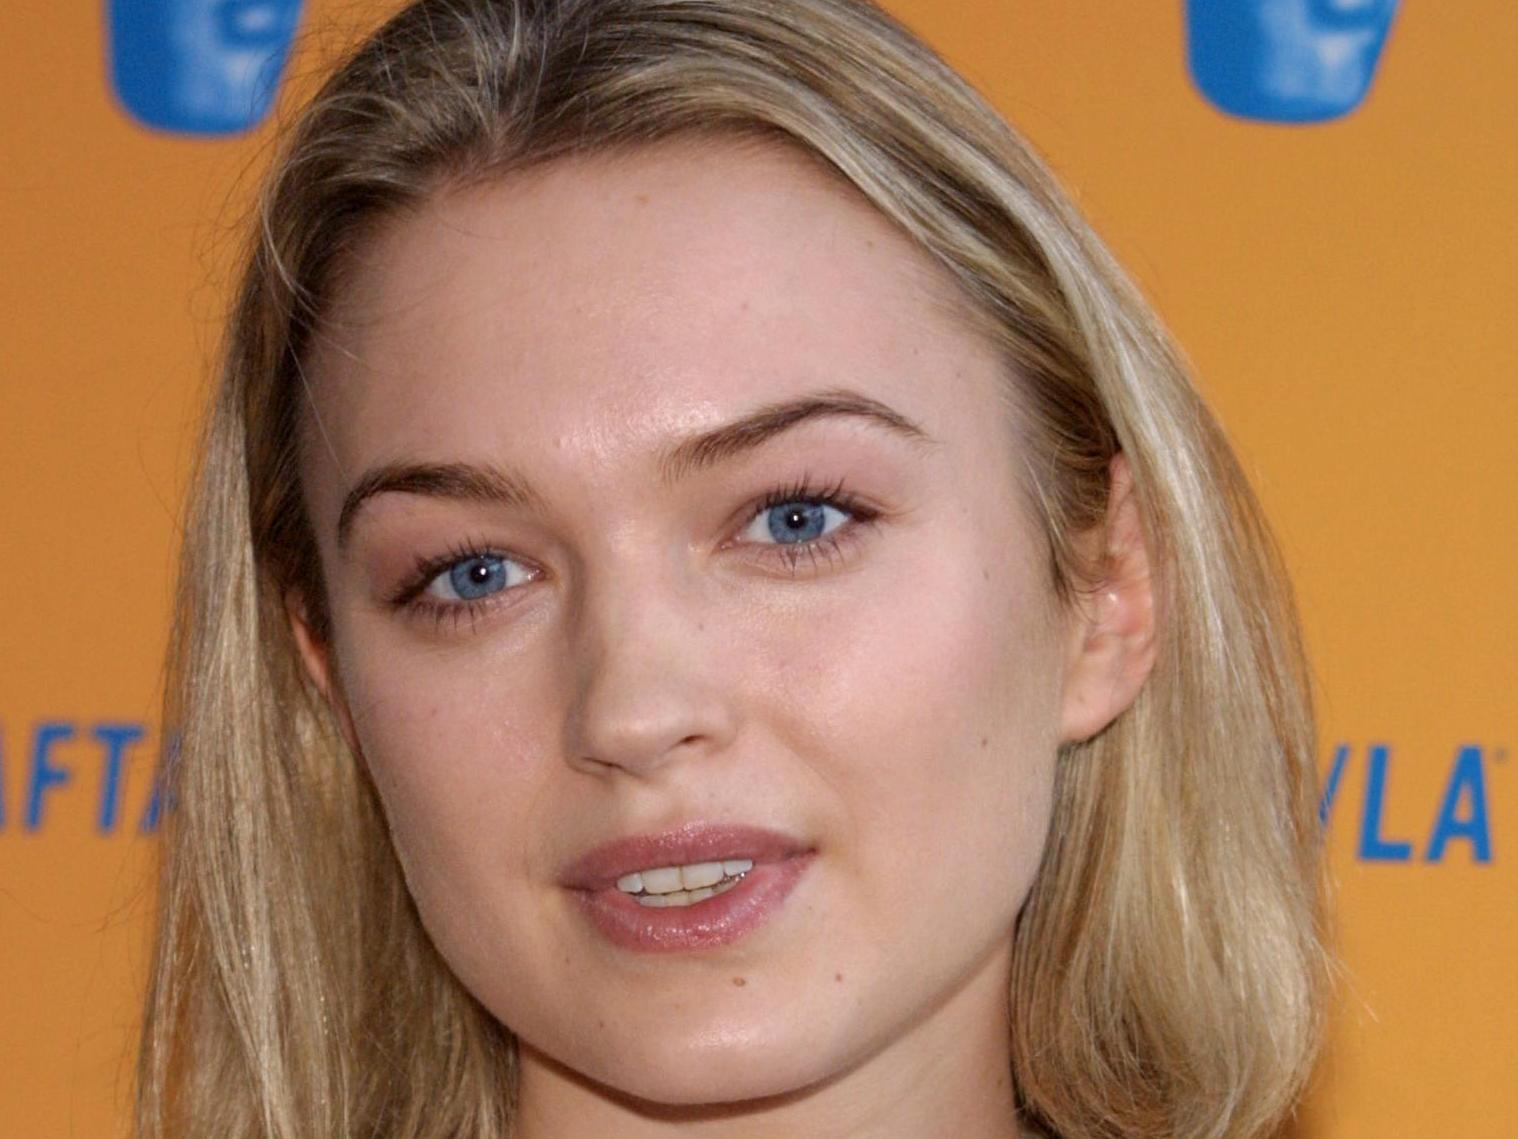 Coronavirus: Sophia Myles issues virus warning on GMB following father's death